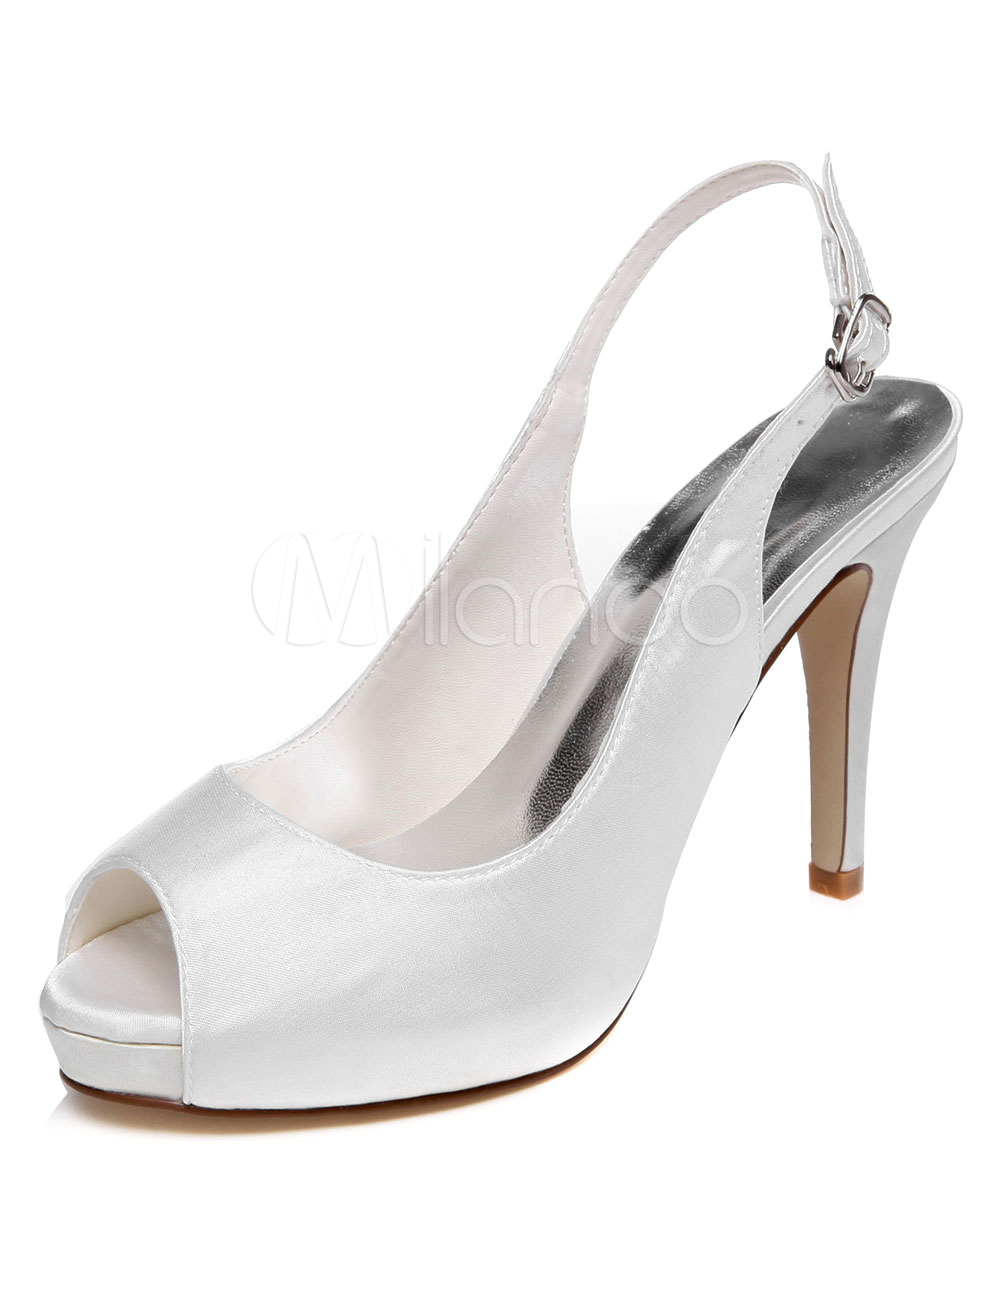 Buy White Platform Satin Peep Toe Evening&Bridal Sandals for $54.39 in Milanoo store